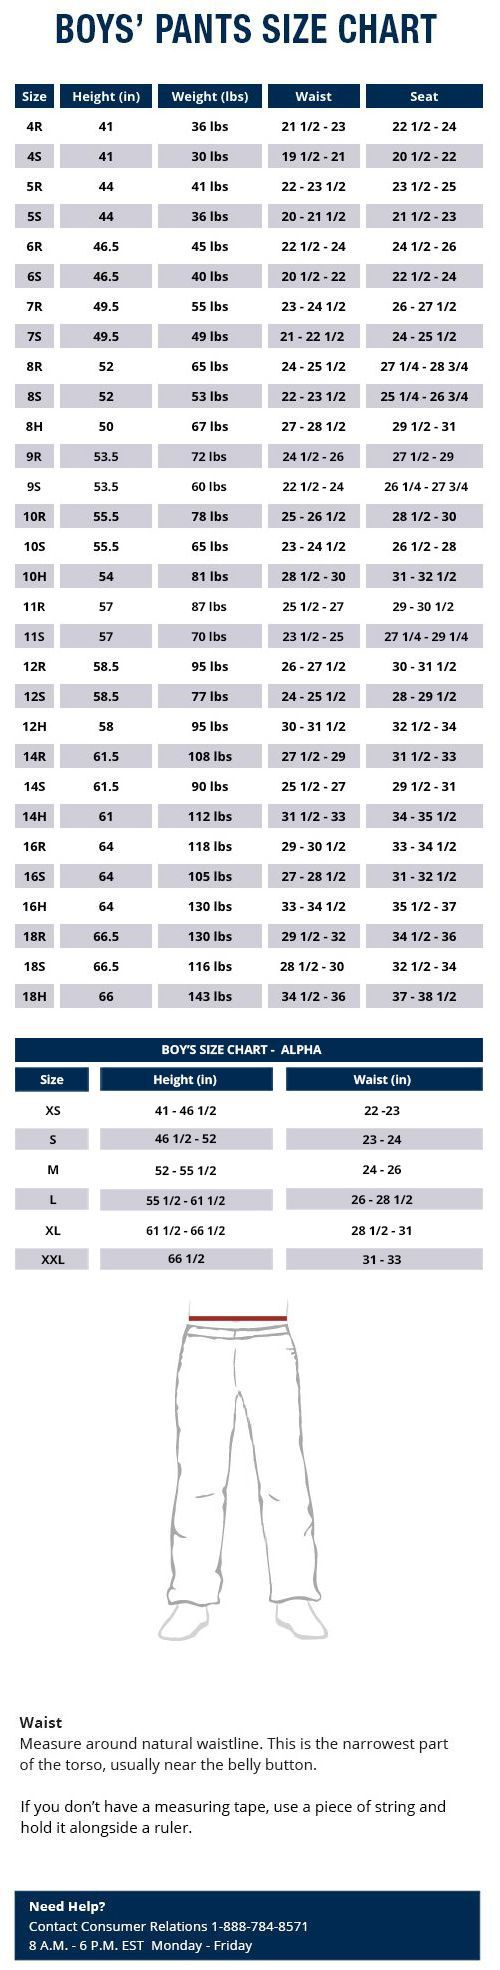 Wrangler Boys Jeans Pants And Shorts Size Chart Jeans Size Chart Size Chart Wrangler Jeans